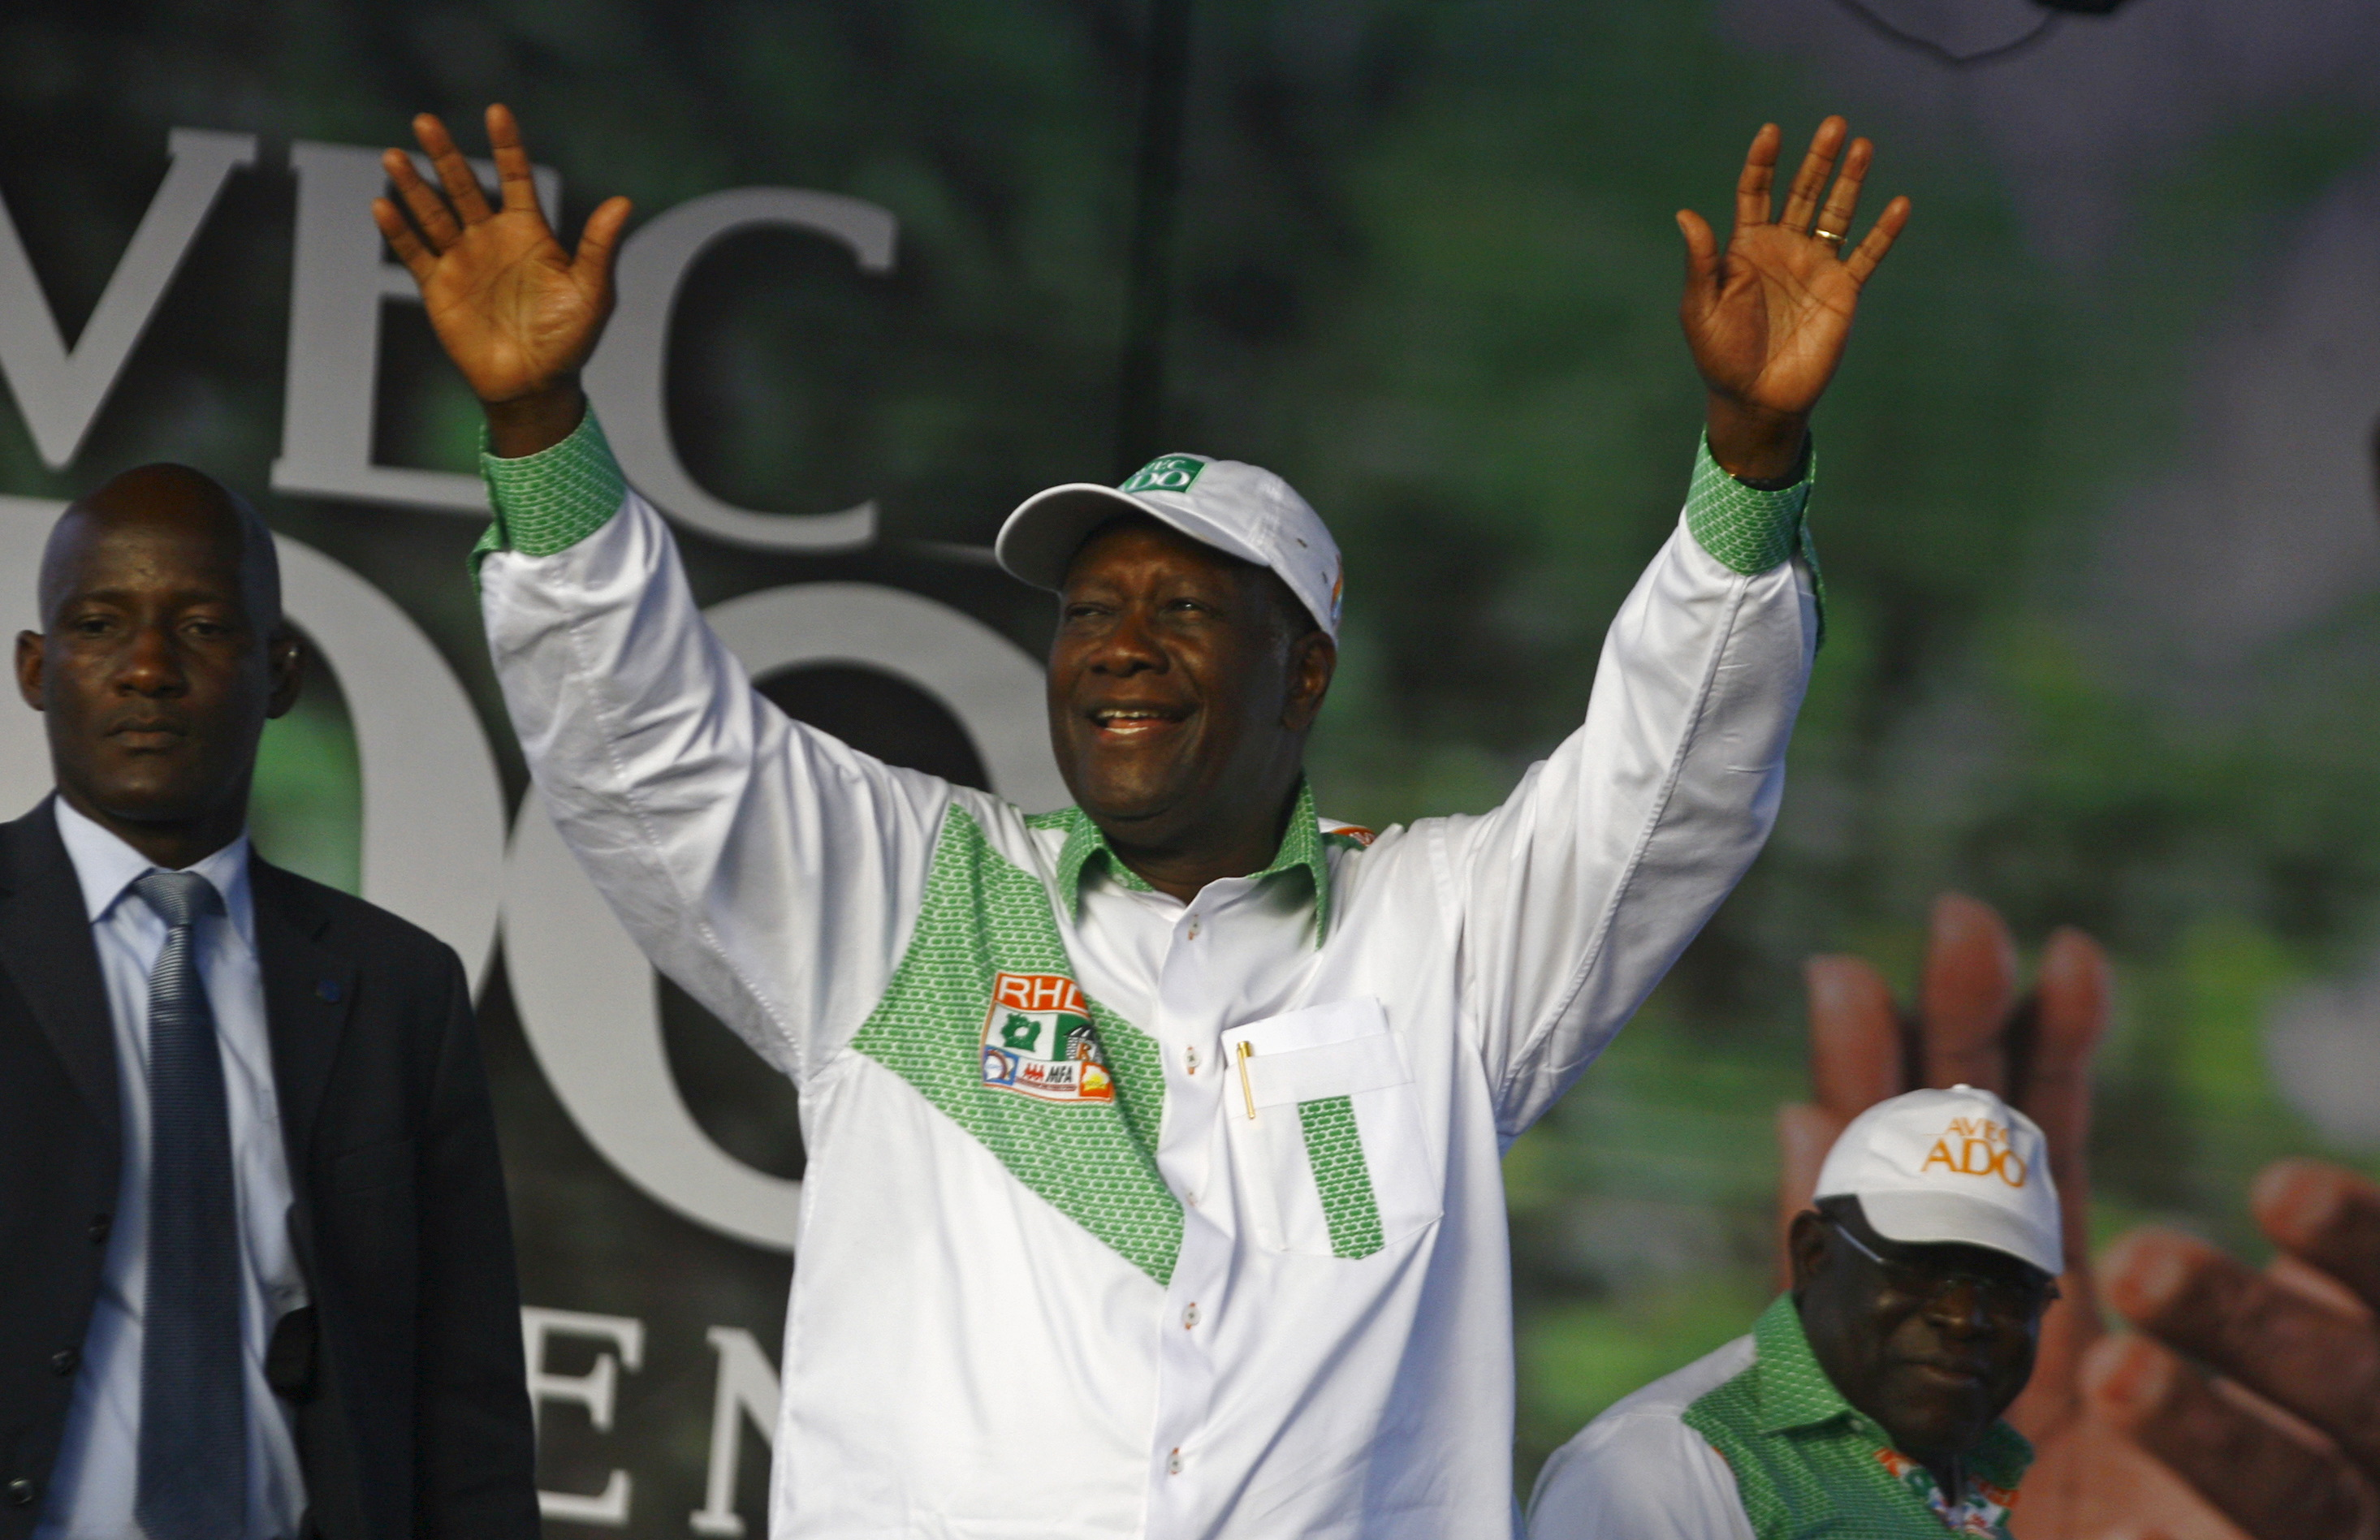 Ivory Coast's President Alassane Ouattara of the Rally of the Houphouetists for Democracy and Peace (RHDP) party waves as he arrives for a campaign rally at the place inch alla in Abidjan, Oct. 20, 2015.